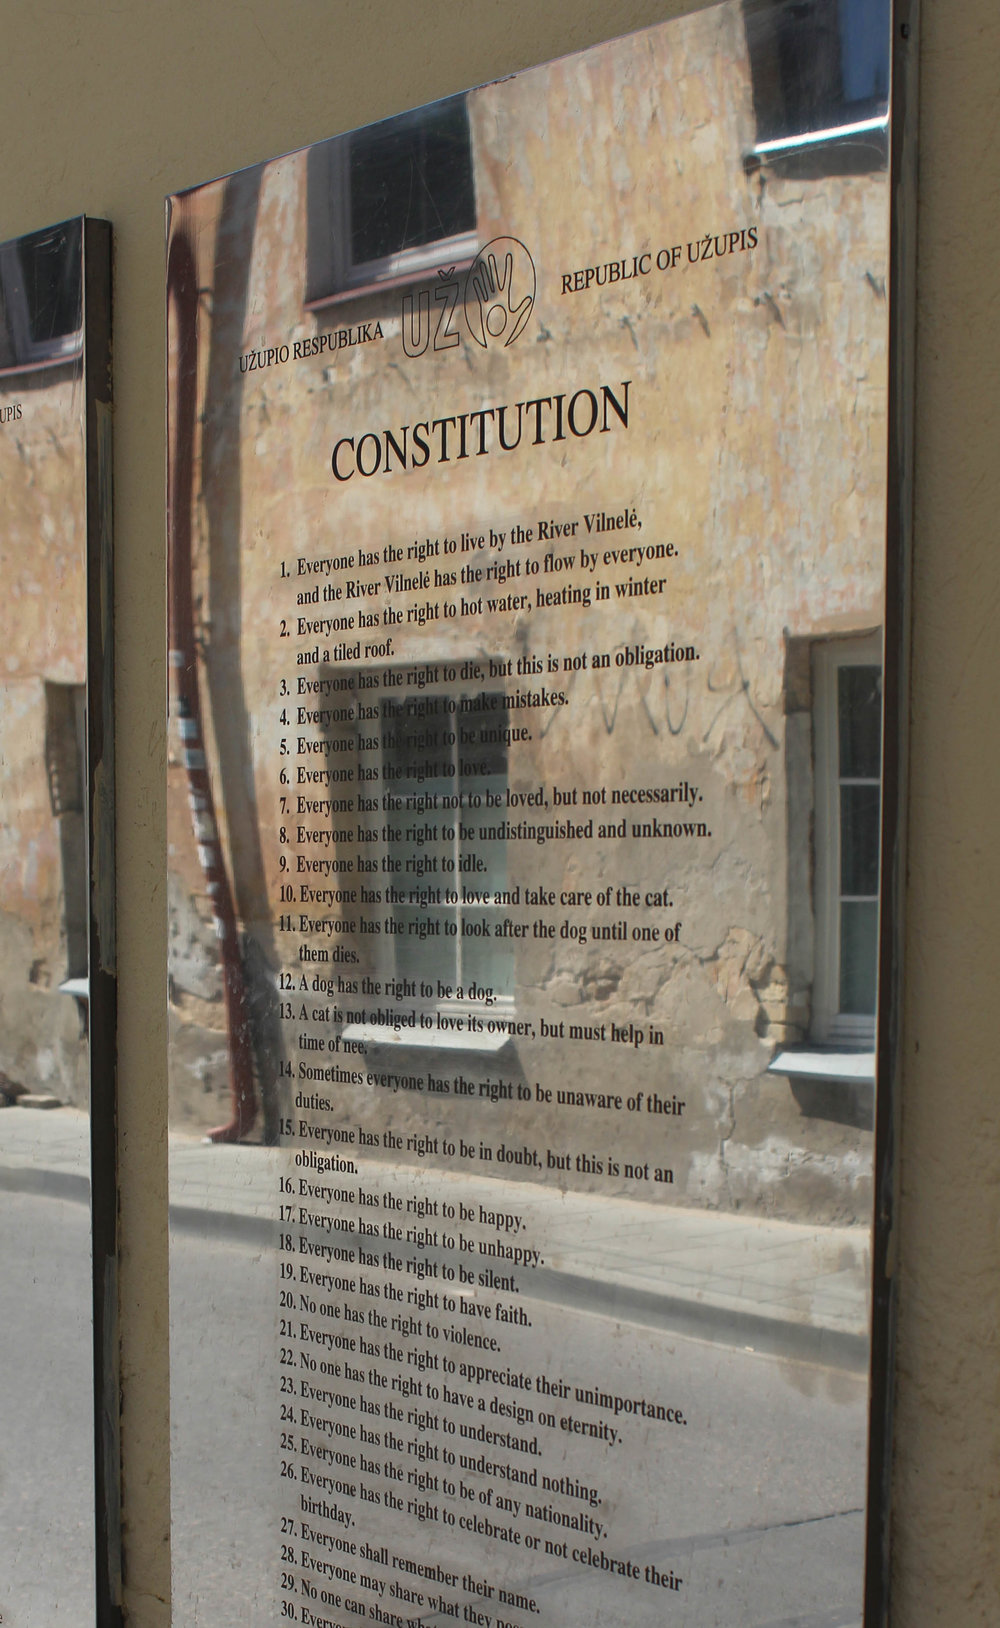 The Constitution of the Republic of Uzupis